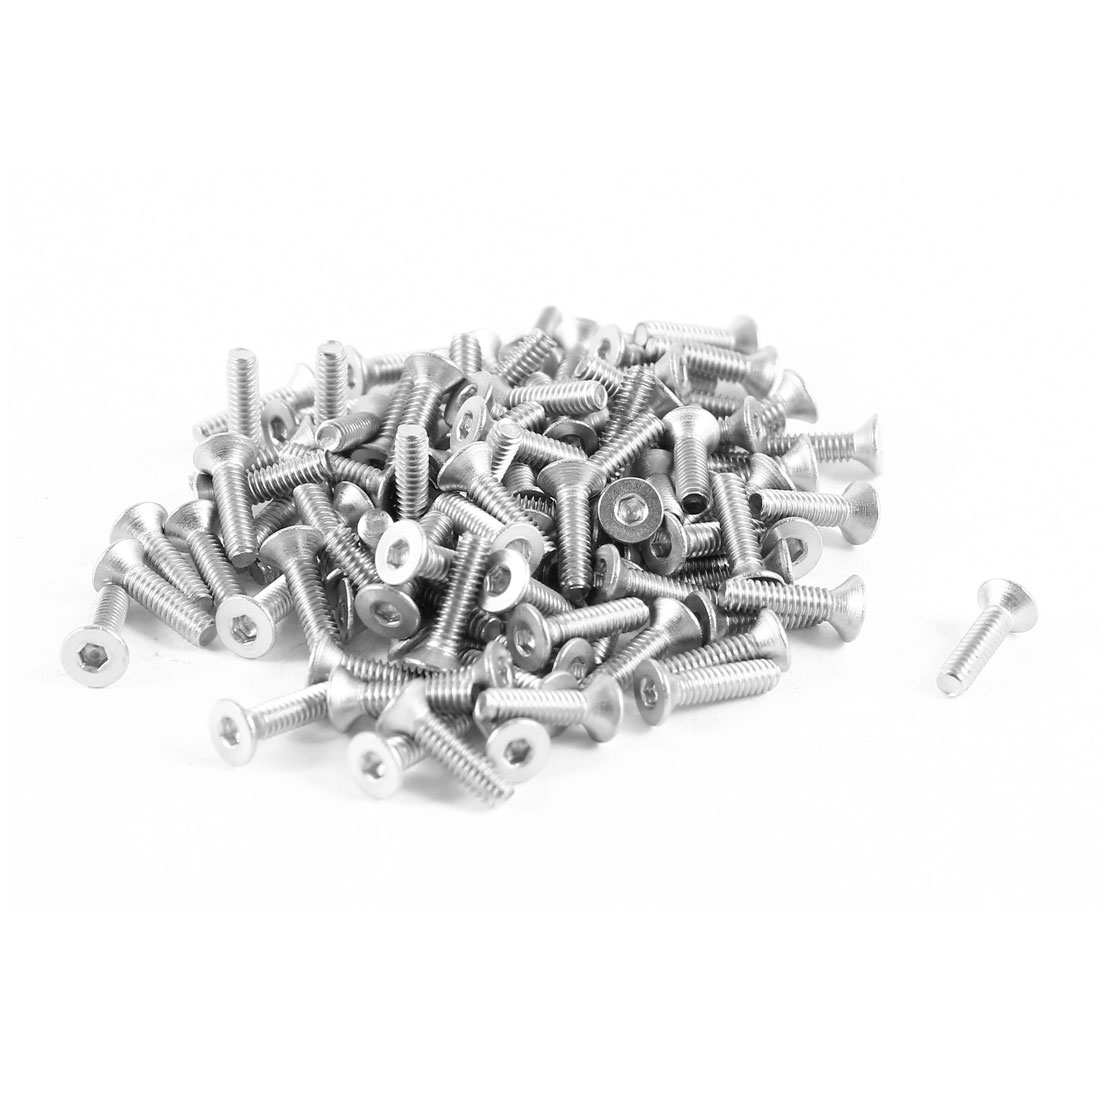 100 Pcs 304HC Steel Countersunk Hex Flat Head Bolts Screws M2 x 8mm